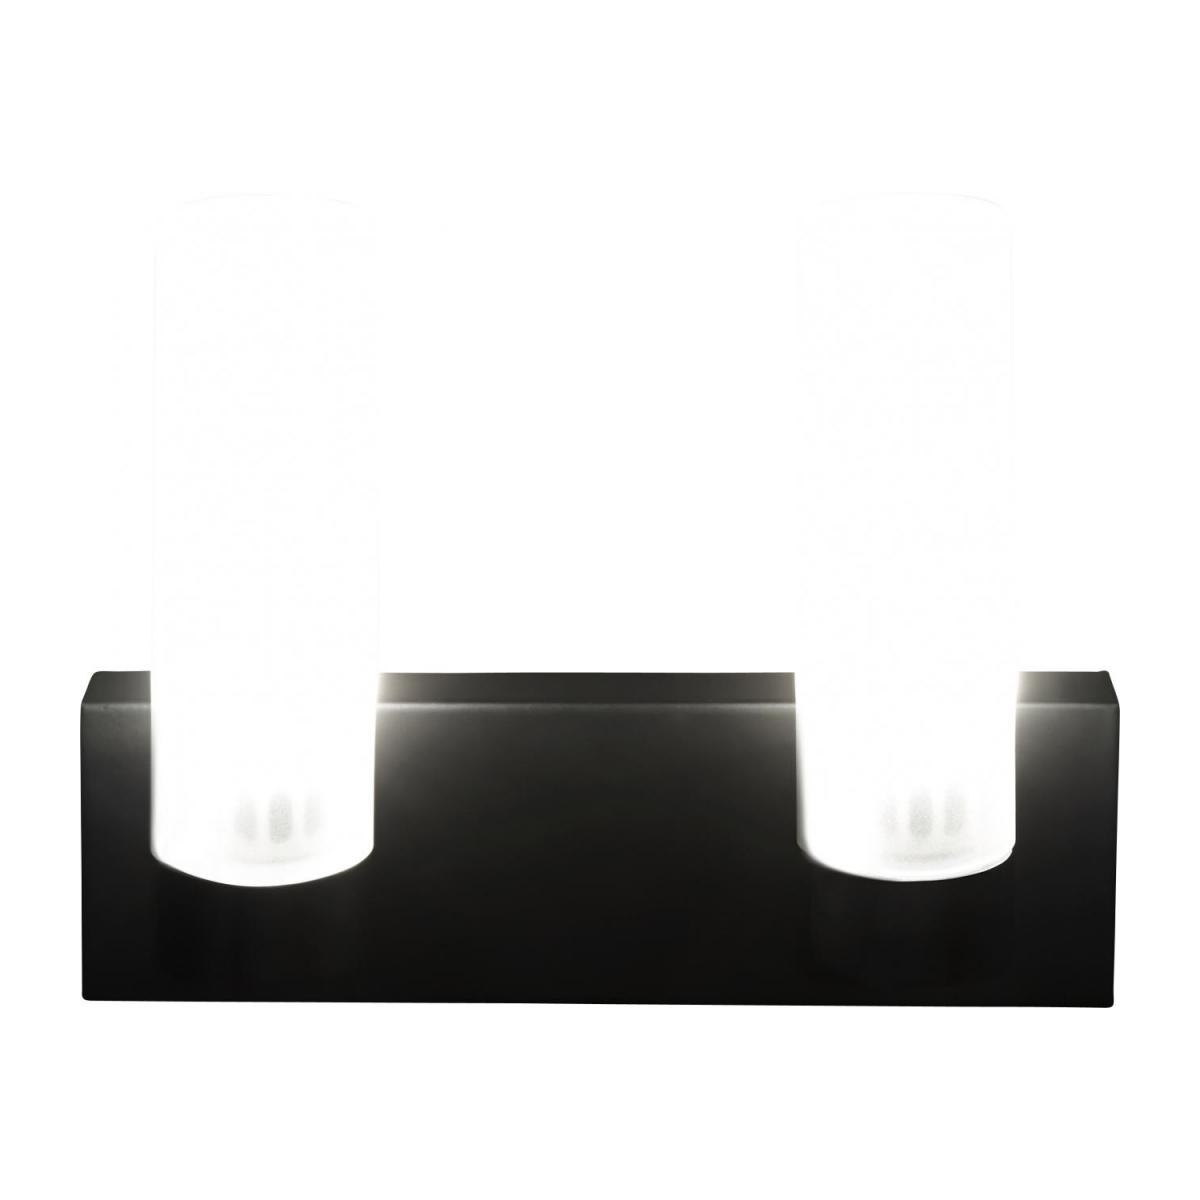 Applique LED norme IP44 matte - 2 lumières n°4